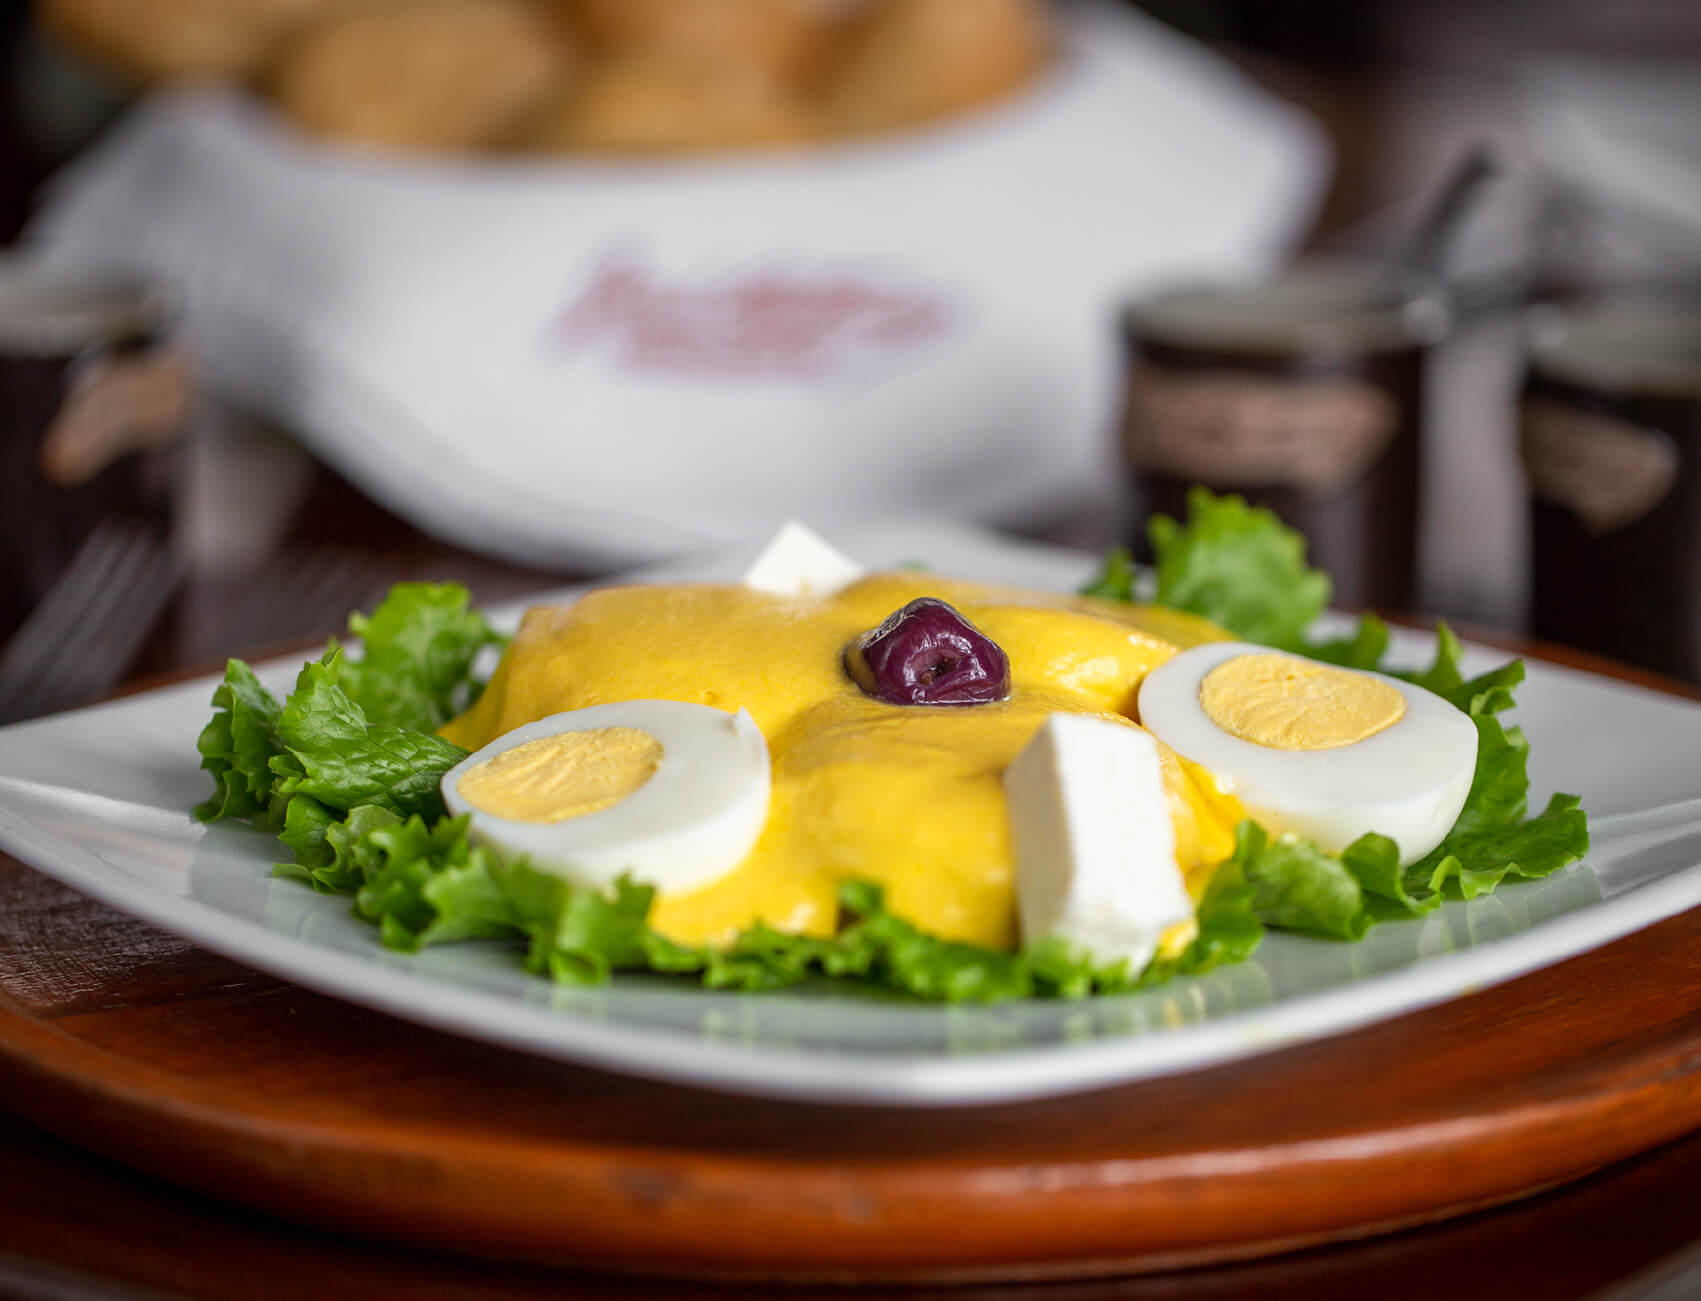 Photo of a plate of papa a la huacaina, garnished with lettuce, sliced hardboiled egg, and an olive.